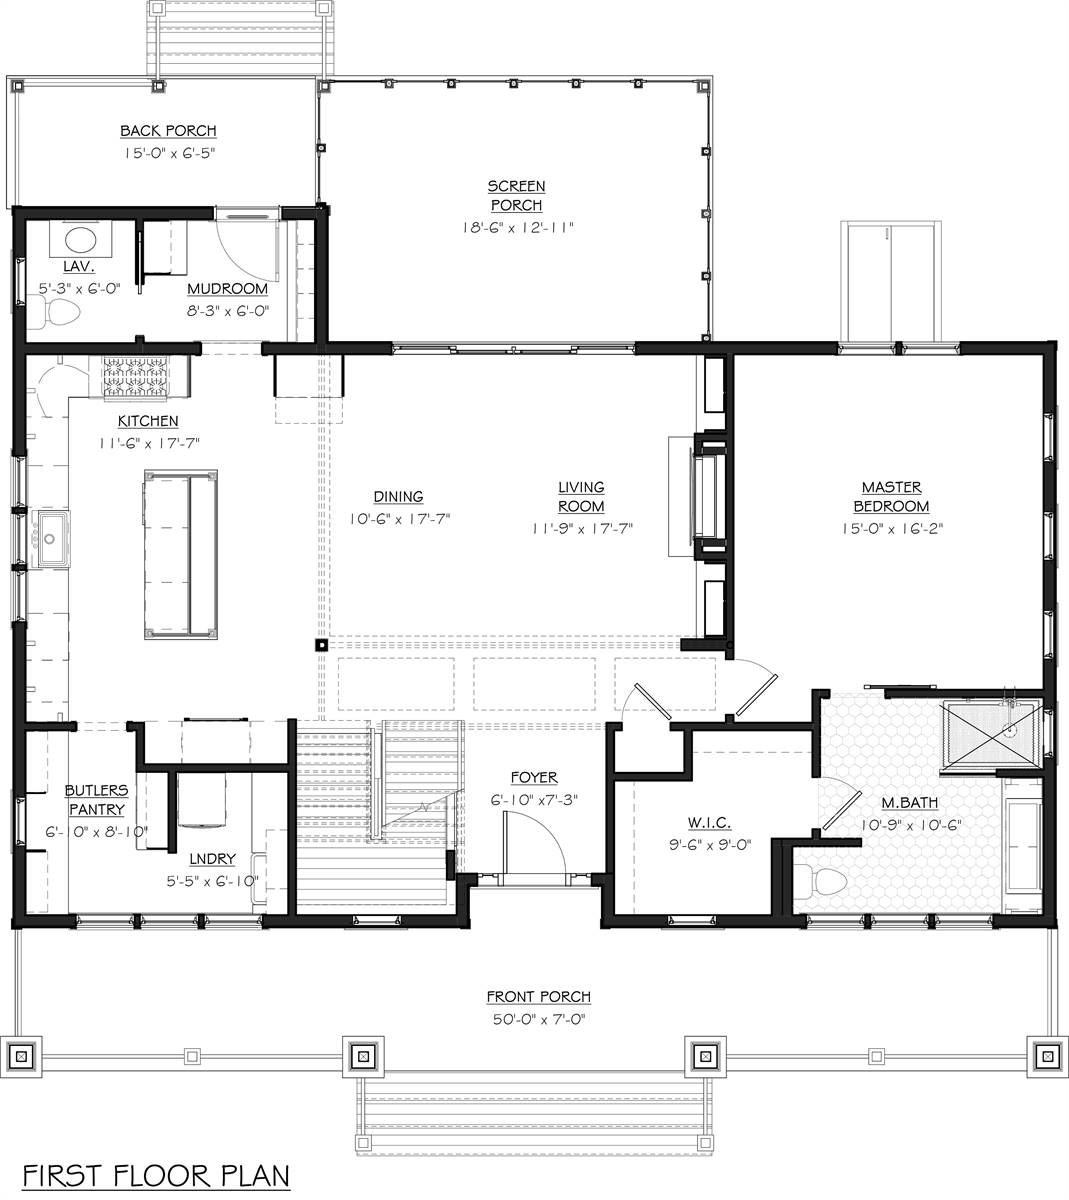 House Plan 7055 by Direct from the Designers